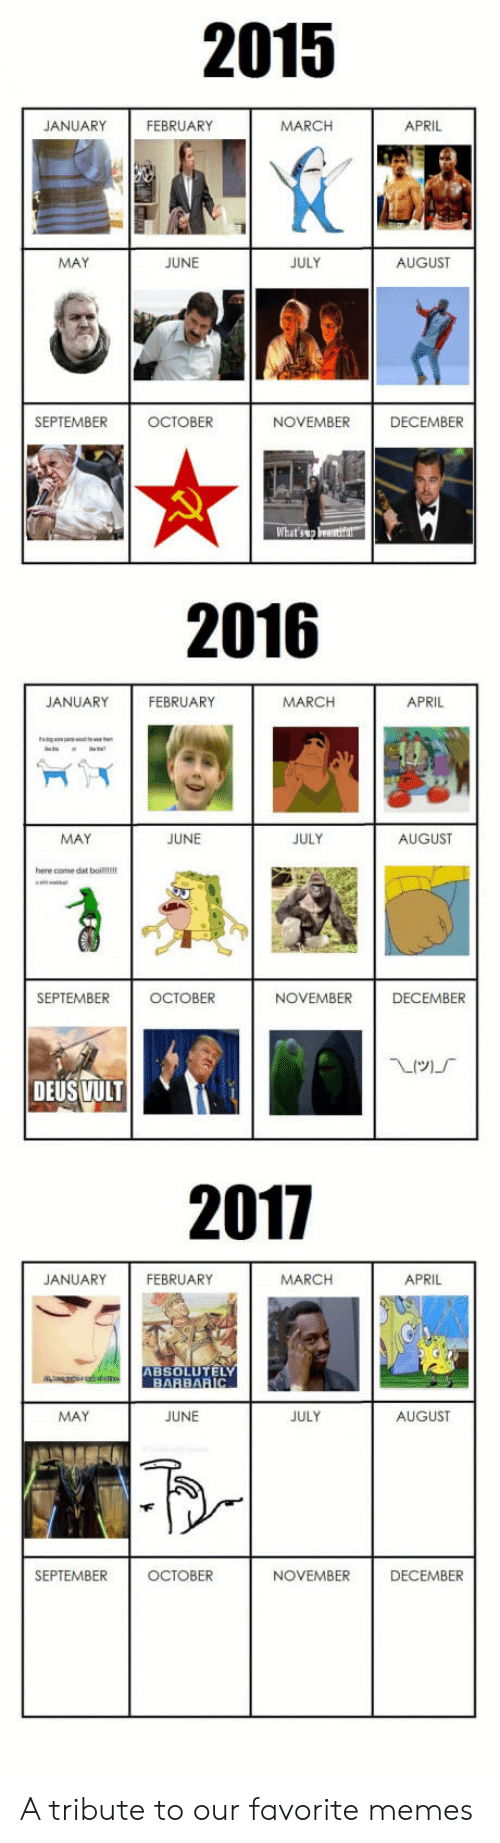 Memes, April, and Dat Boi: 2015  JANUARY  FEBRUARY  MARCH  APRIL  MAY  JUNE  JULY  AUGUST  SEPTEMBER  OCTOBER  NOVEMBER  DECEMBER  2016  JANUARY  FEBRUARY  MARCH  APRIL  MAY  JUNE  JULY  AUGUST  here come dat boi!!  SEPTEMBER  OCTOBER  NOVEMBER  DECEMBER  DEUS VULT  2017  JANUARY  FEBRUARY  MARCH  APRIL  ABSOLUTELY  BARBARIC  MAY  JUNE  JULY  AUGUST  SEPTEMBER  OCTOBER  NOVEMBER  DECEMBER A tribute to our favorite memes